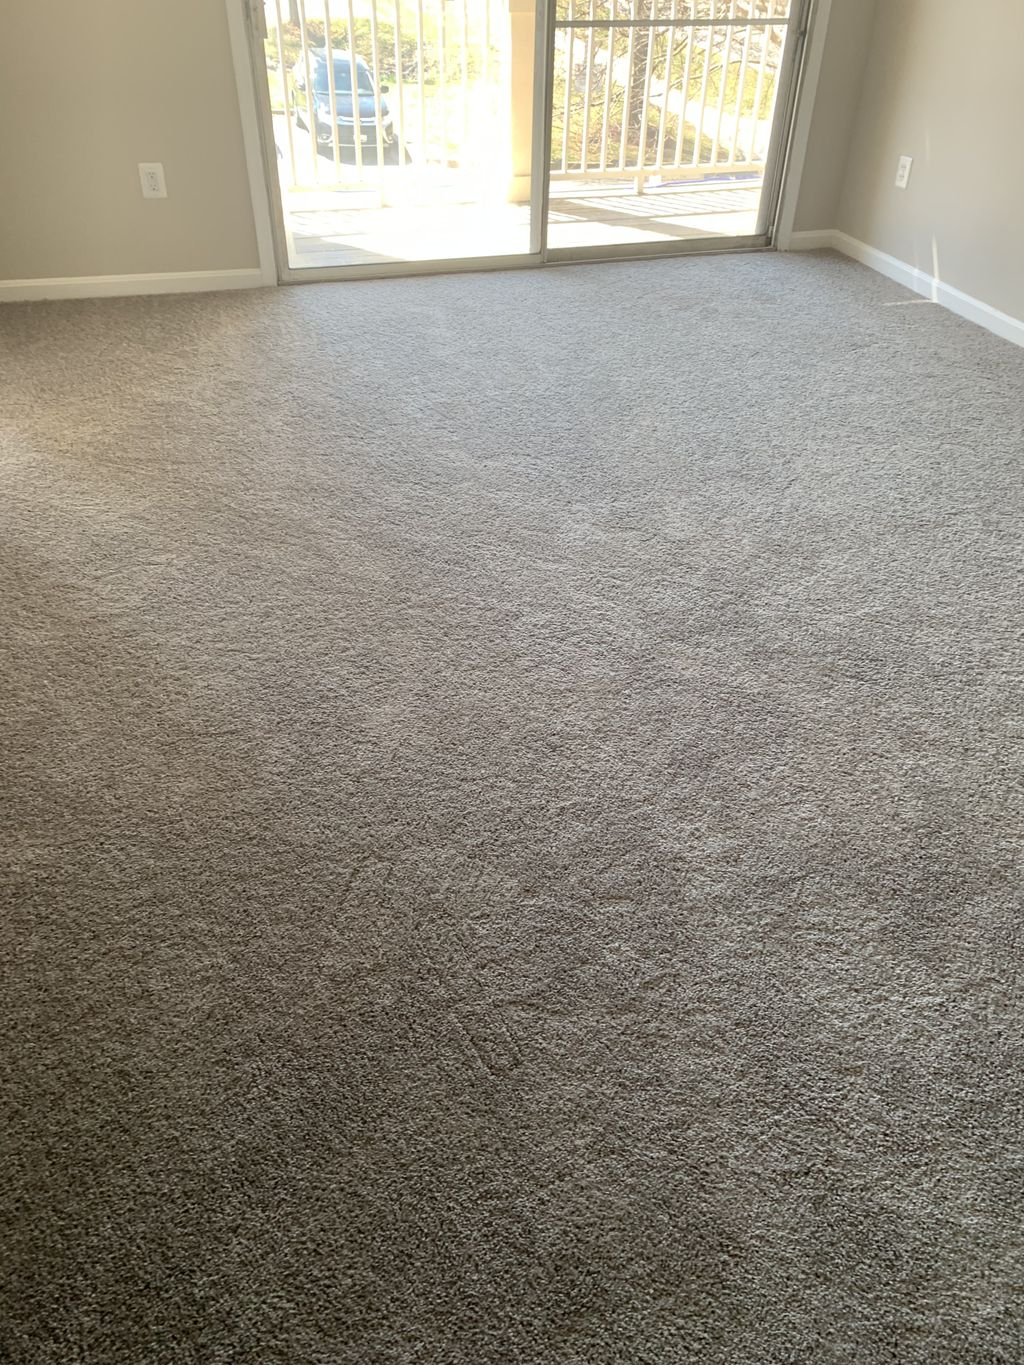 New carpet Installetion in the condominium